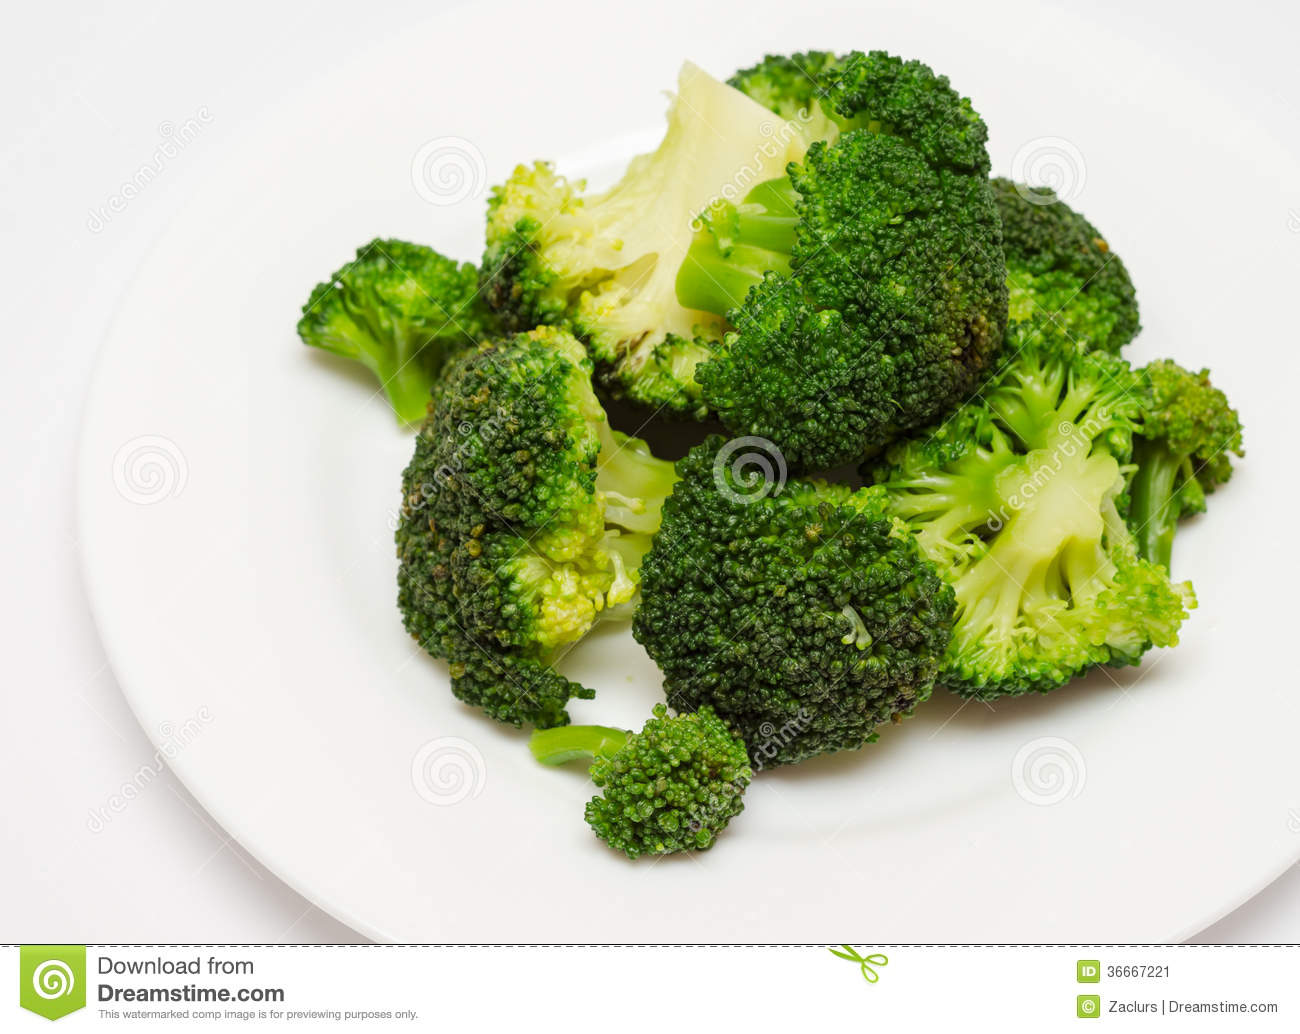 Broccoli clipart cooked. Vegetable pencil and in